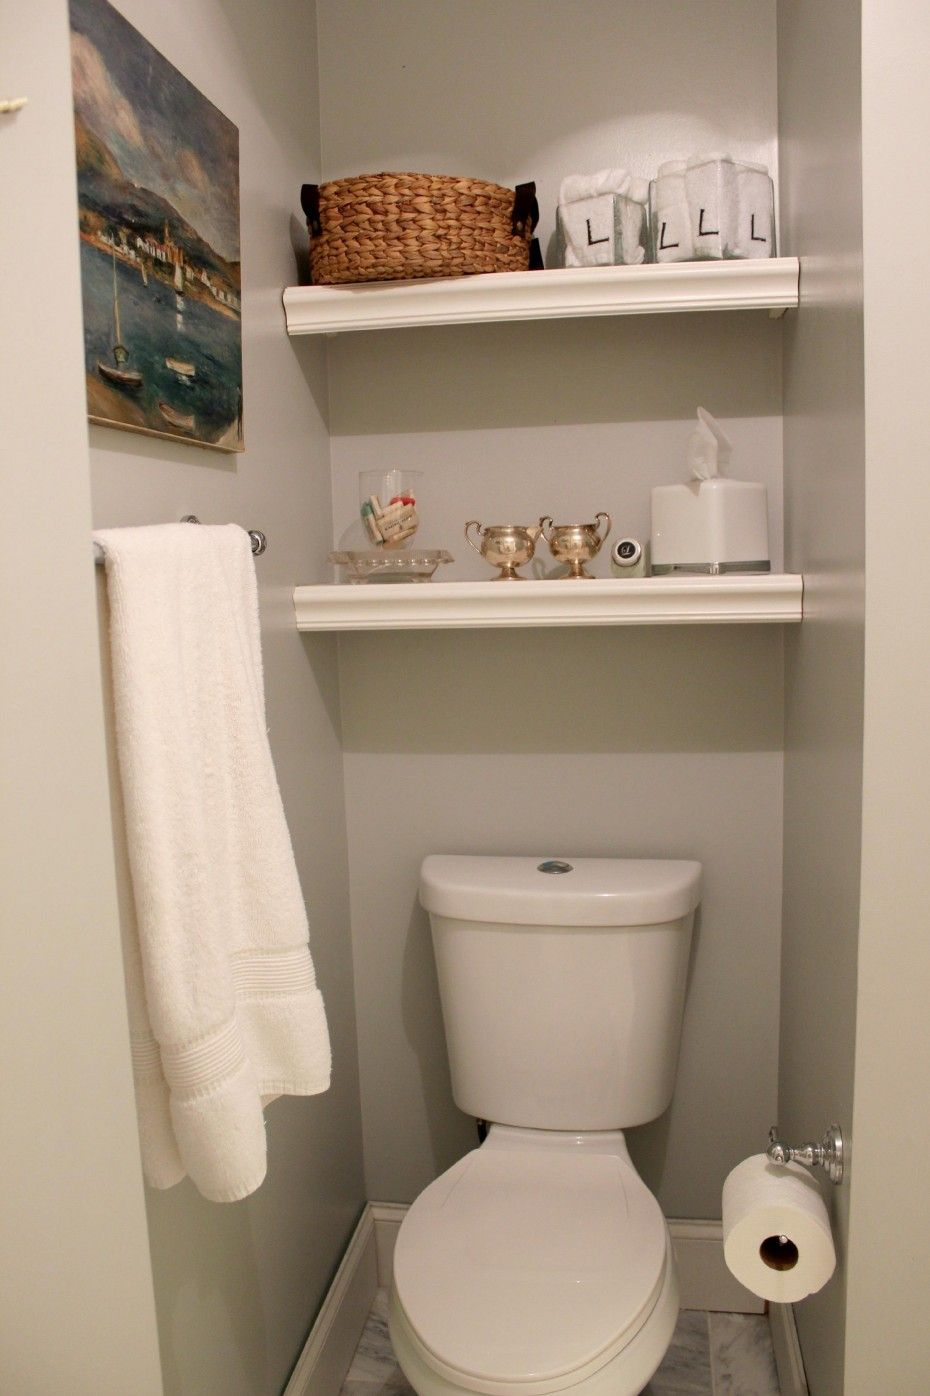 Inspiring Built In Bathroom Shelving Over Toilet Storage With White Polished Decoracao Banheiro Cinza Decoracao De Prateleira De Banheiro Prateleiras Banheiro